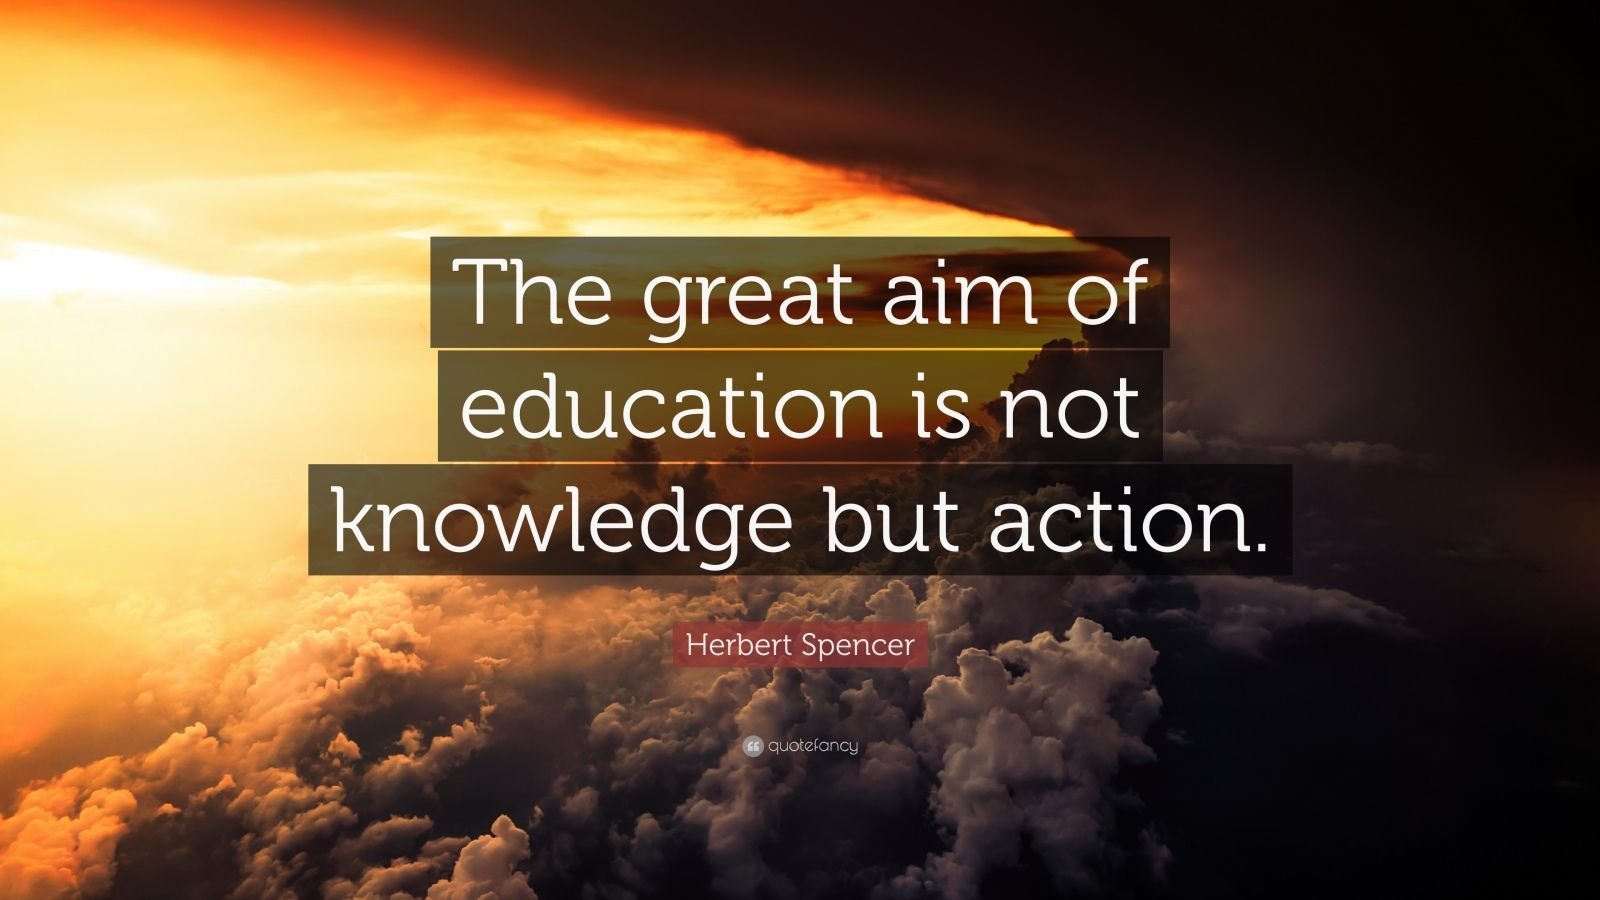 the most important aim of education Kathie green of indiana: the purpose of education is to teach the basics so everyone has a shot at life :) but more than that to create the spark - the curiosity, the creativity, the confidence, the zest for further knowledge that helps a person grow beyond what they believe they can be.